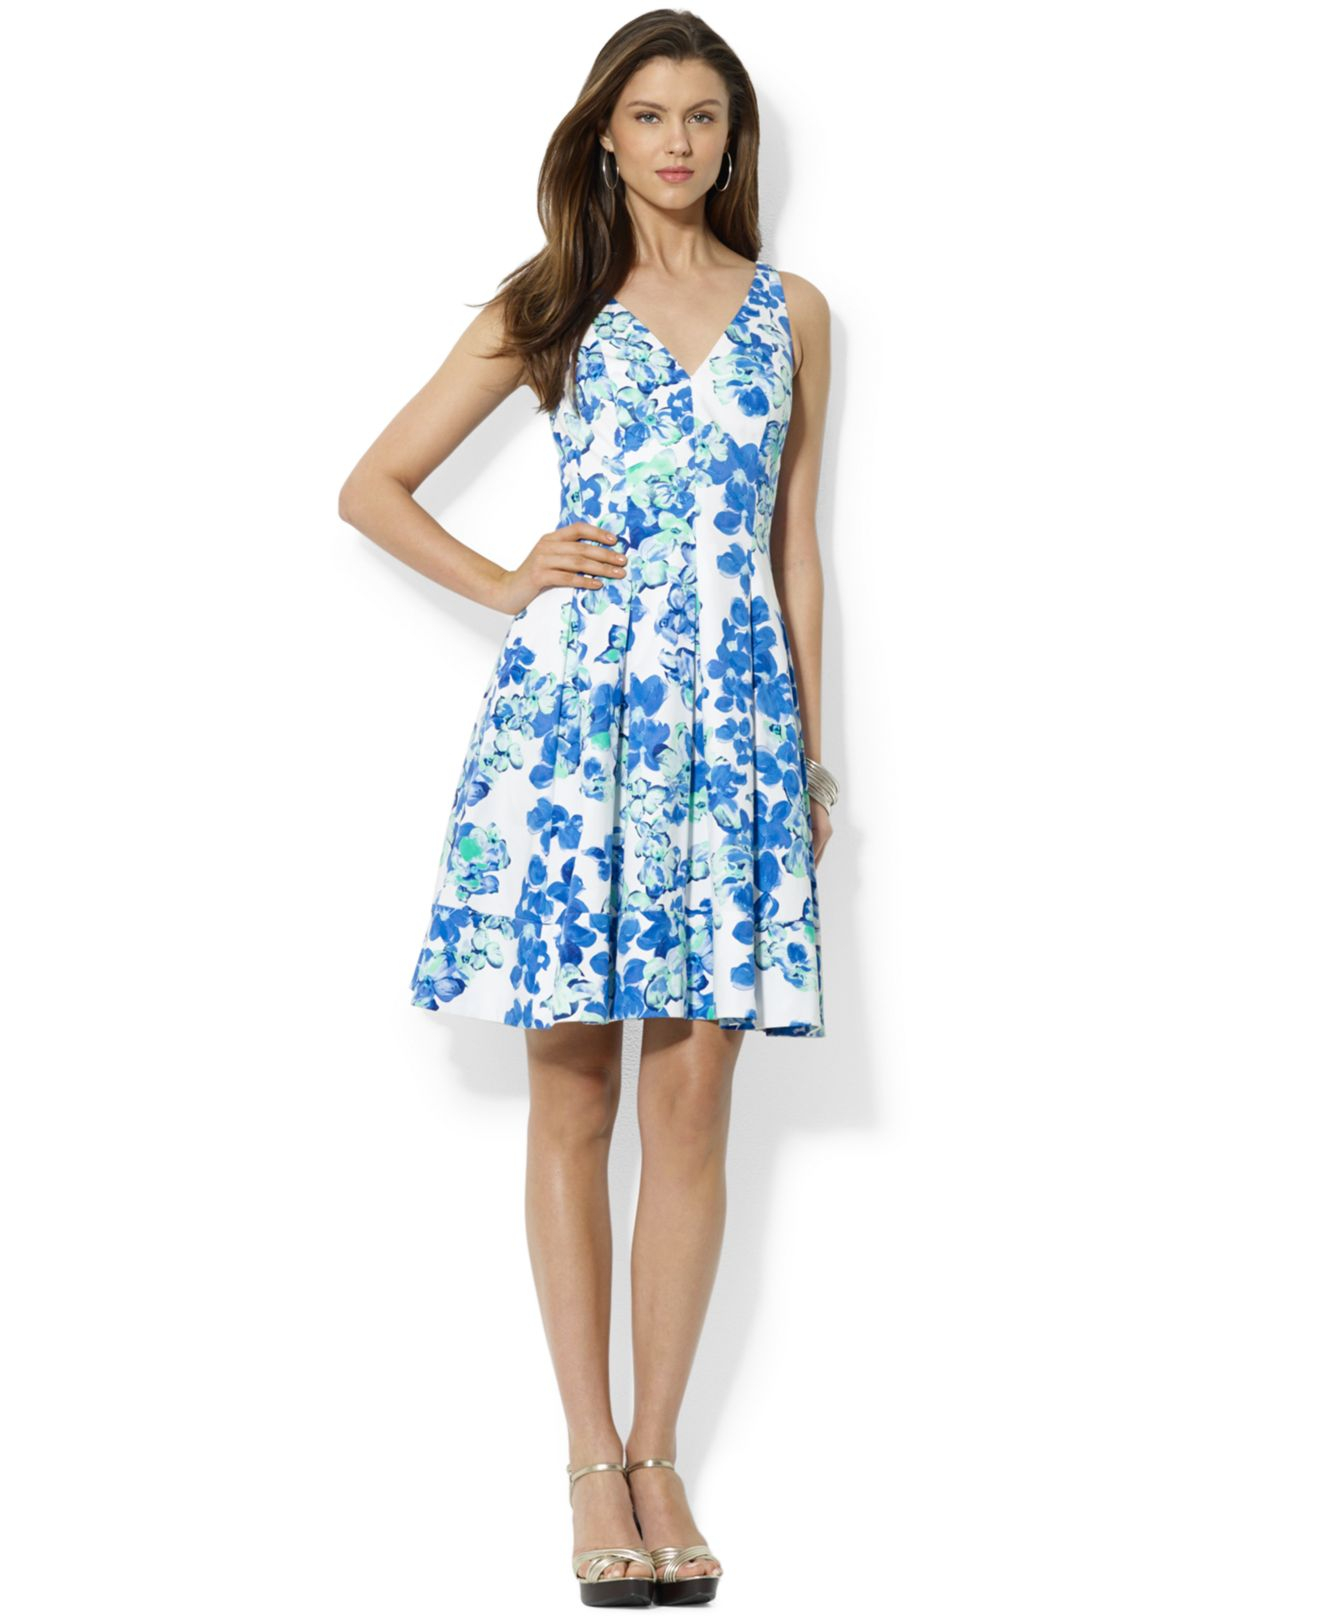 Lord and Taylor Petite Cocktail Dresses